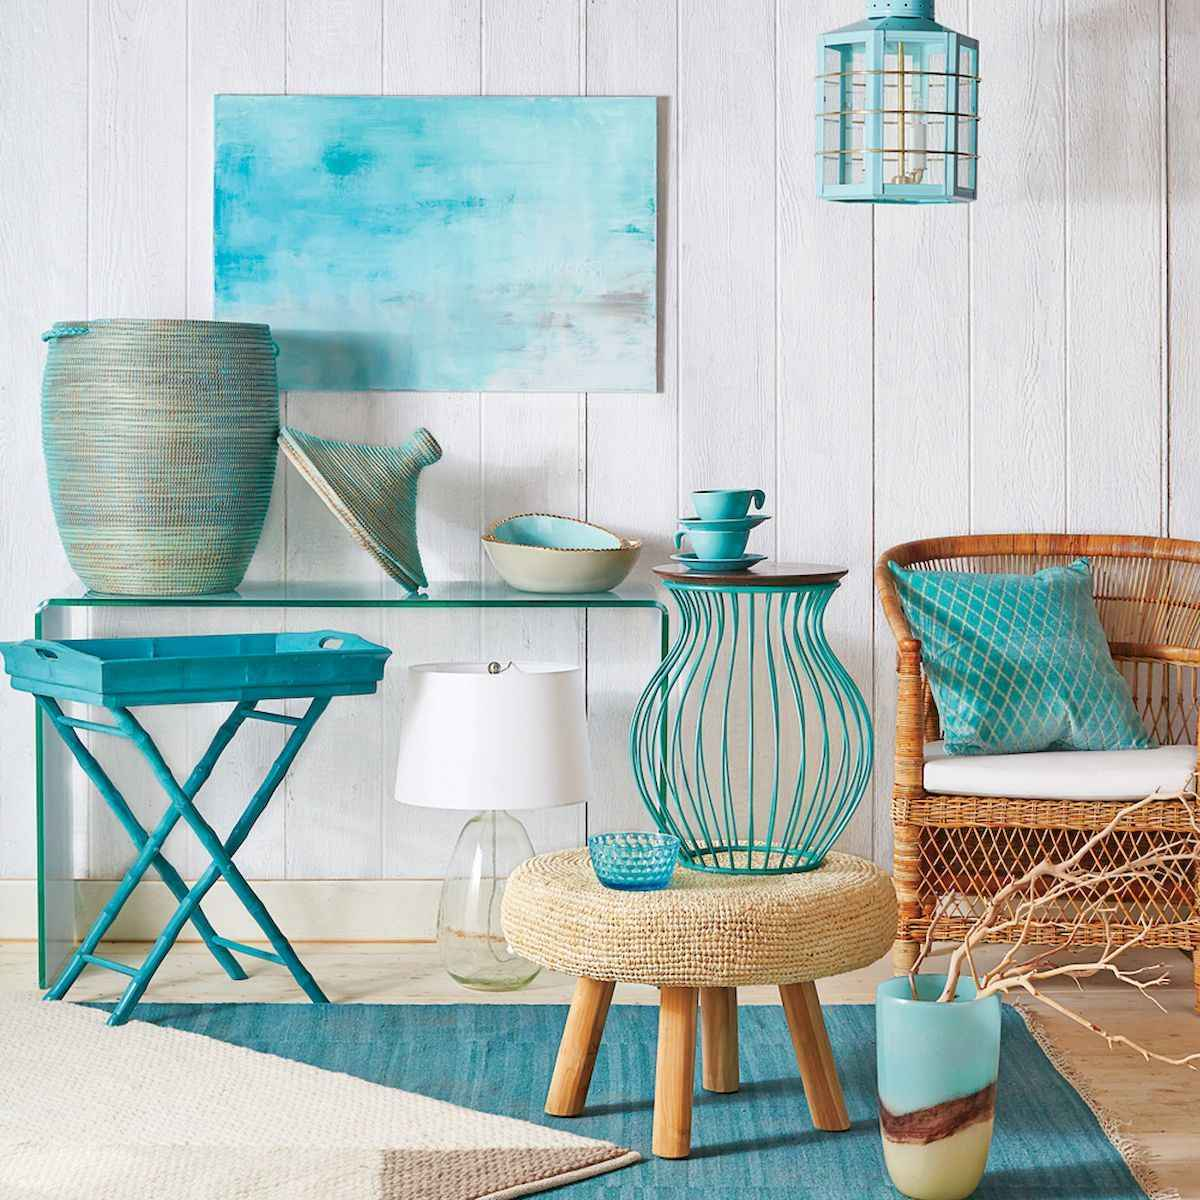 50 Beautiful Summer Apartment Decor Ideas And Makeover (7)